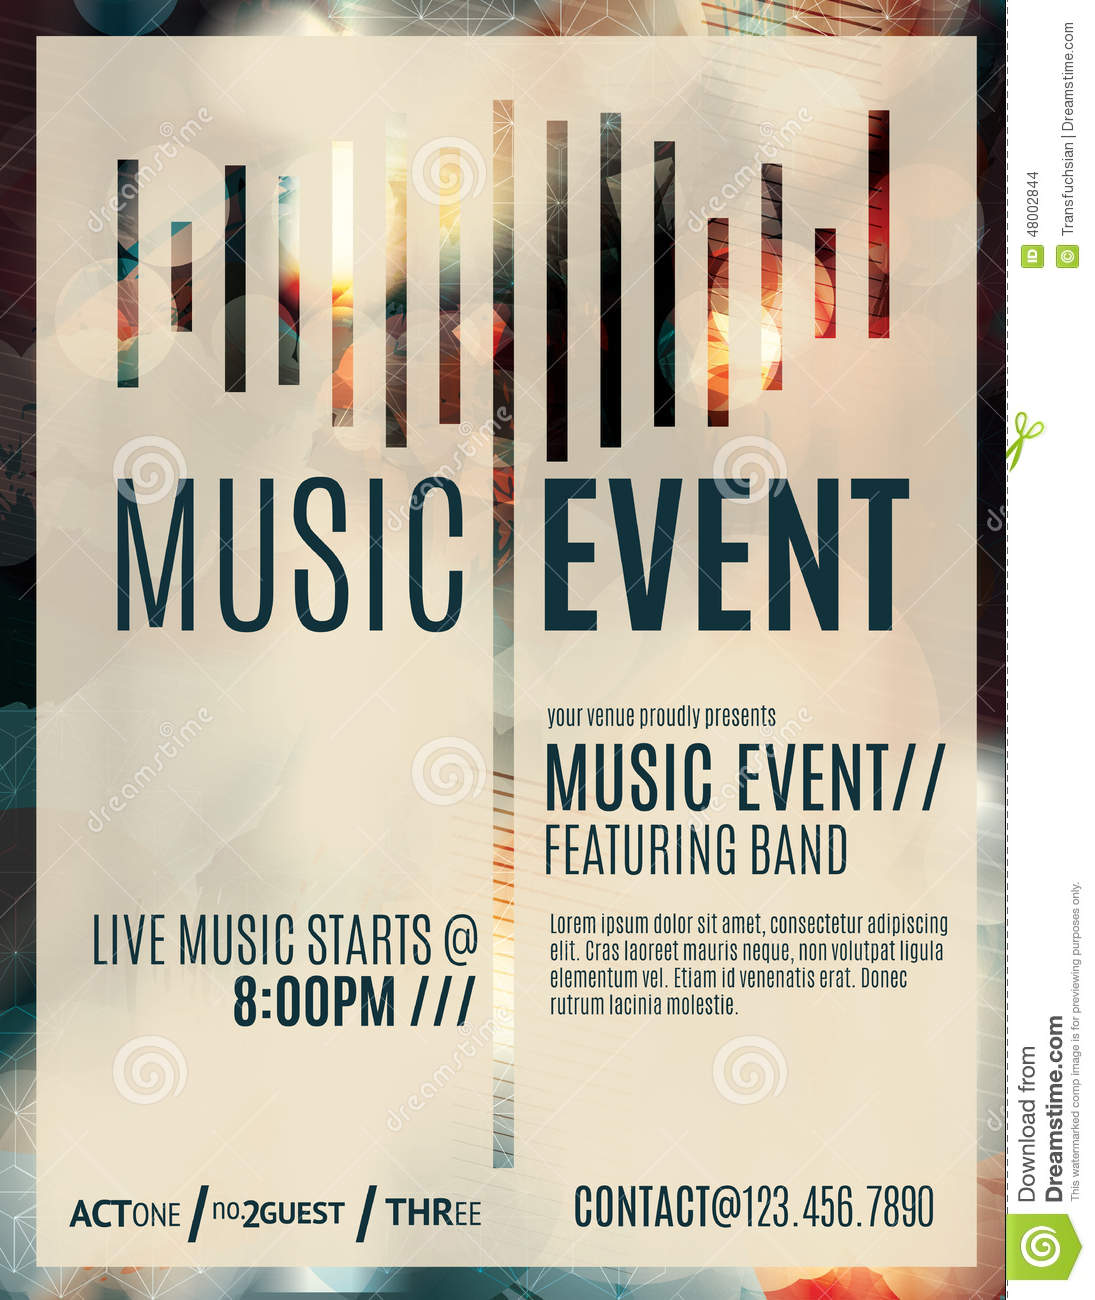 Music Event Flyer Template Vector Image 48002844 – Event Brochure Template